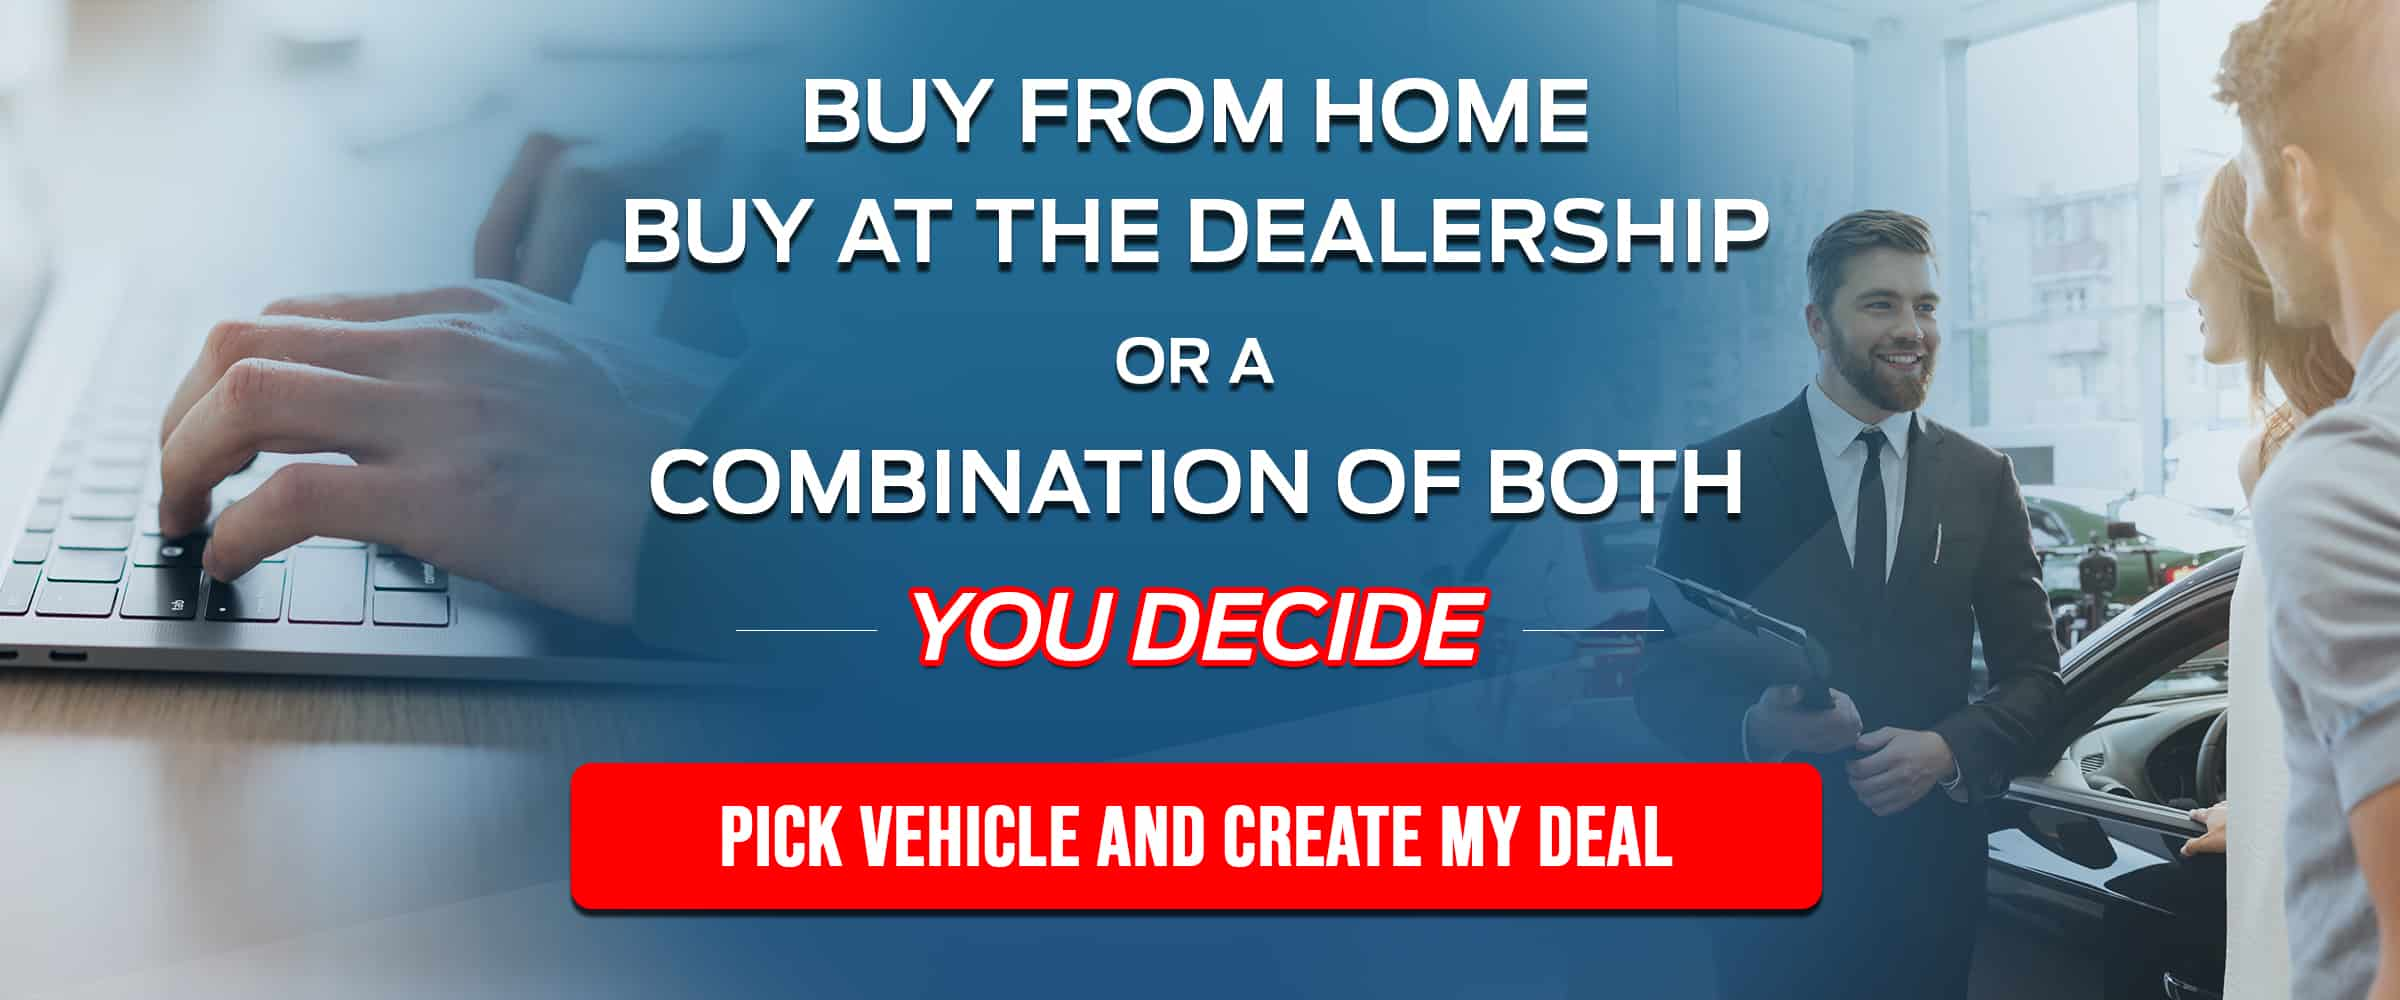 Buy from Home-Ford